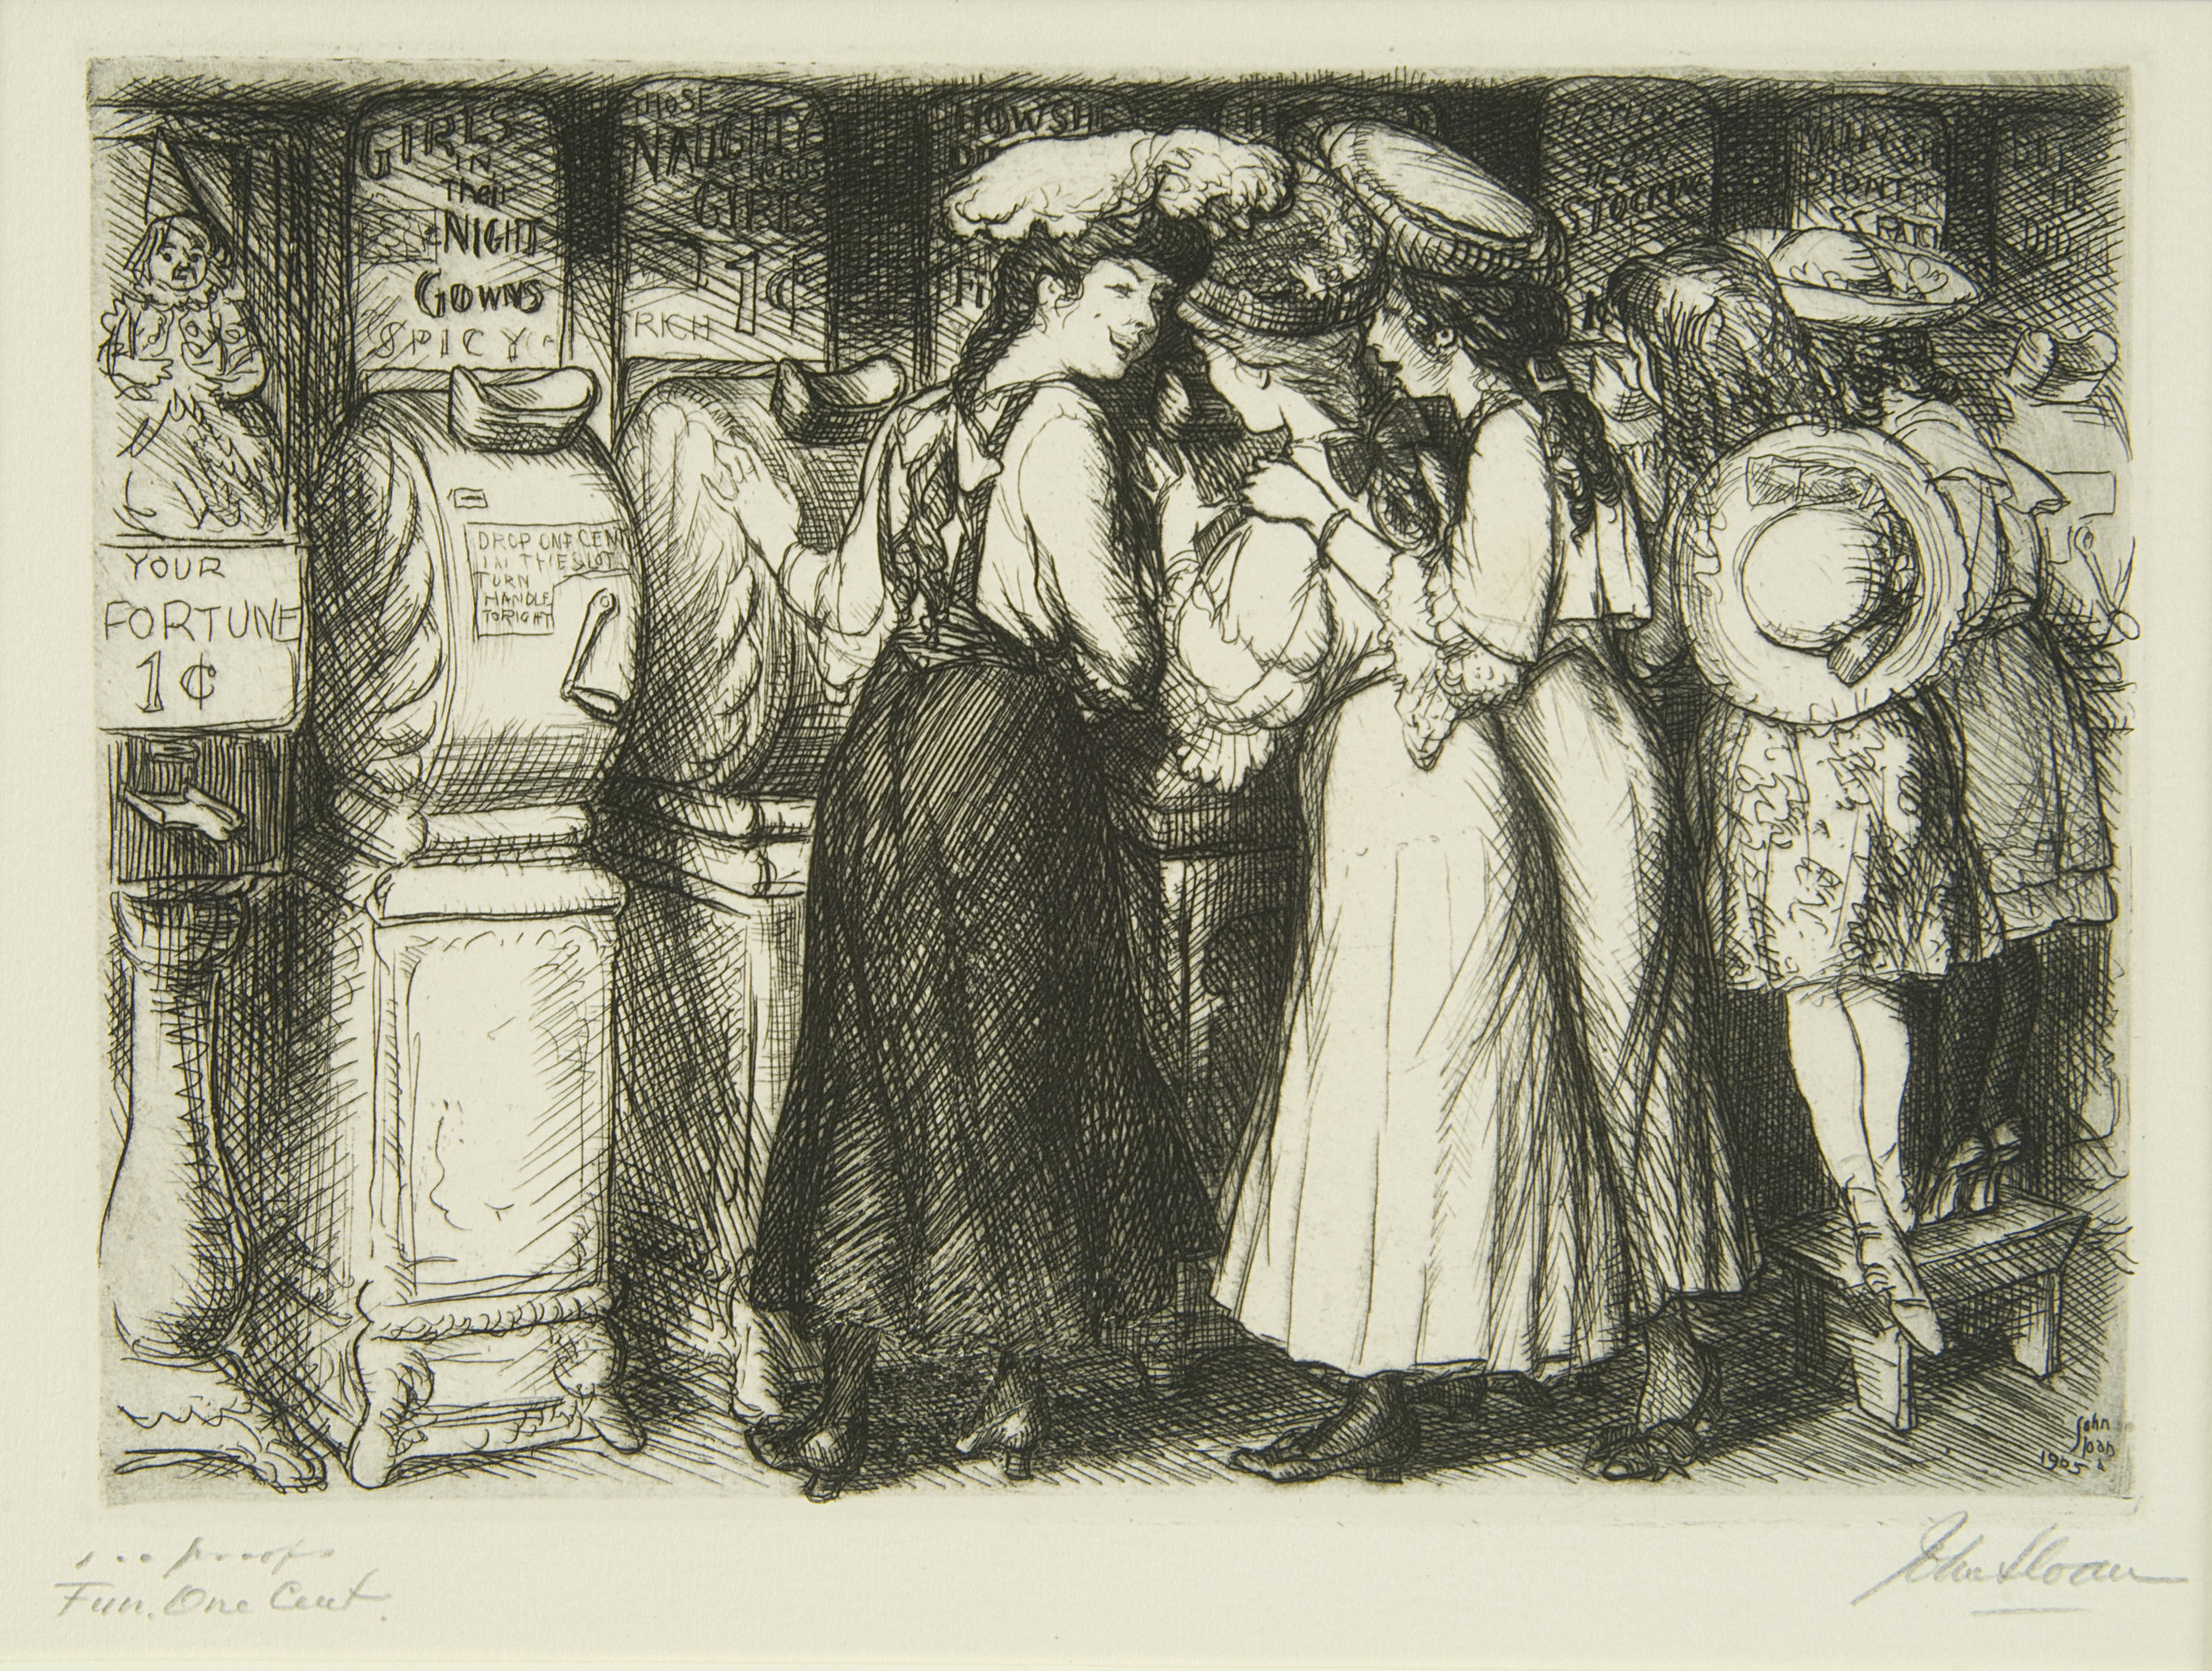 Etching of women looking at naughty images in a one-cent machine